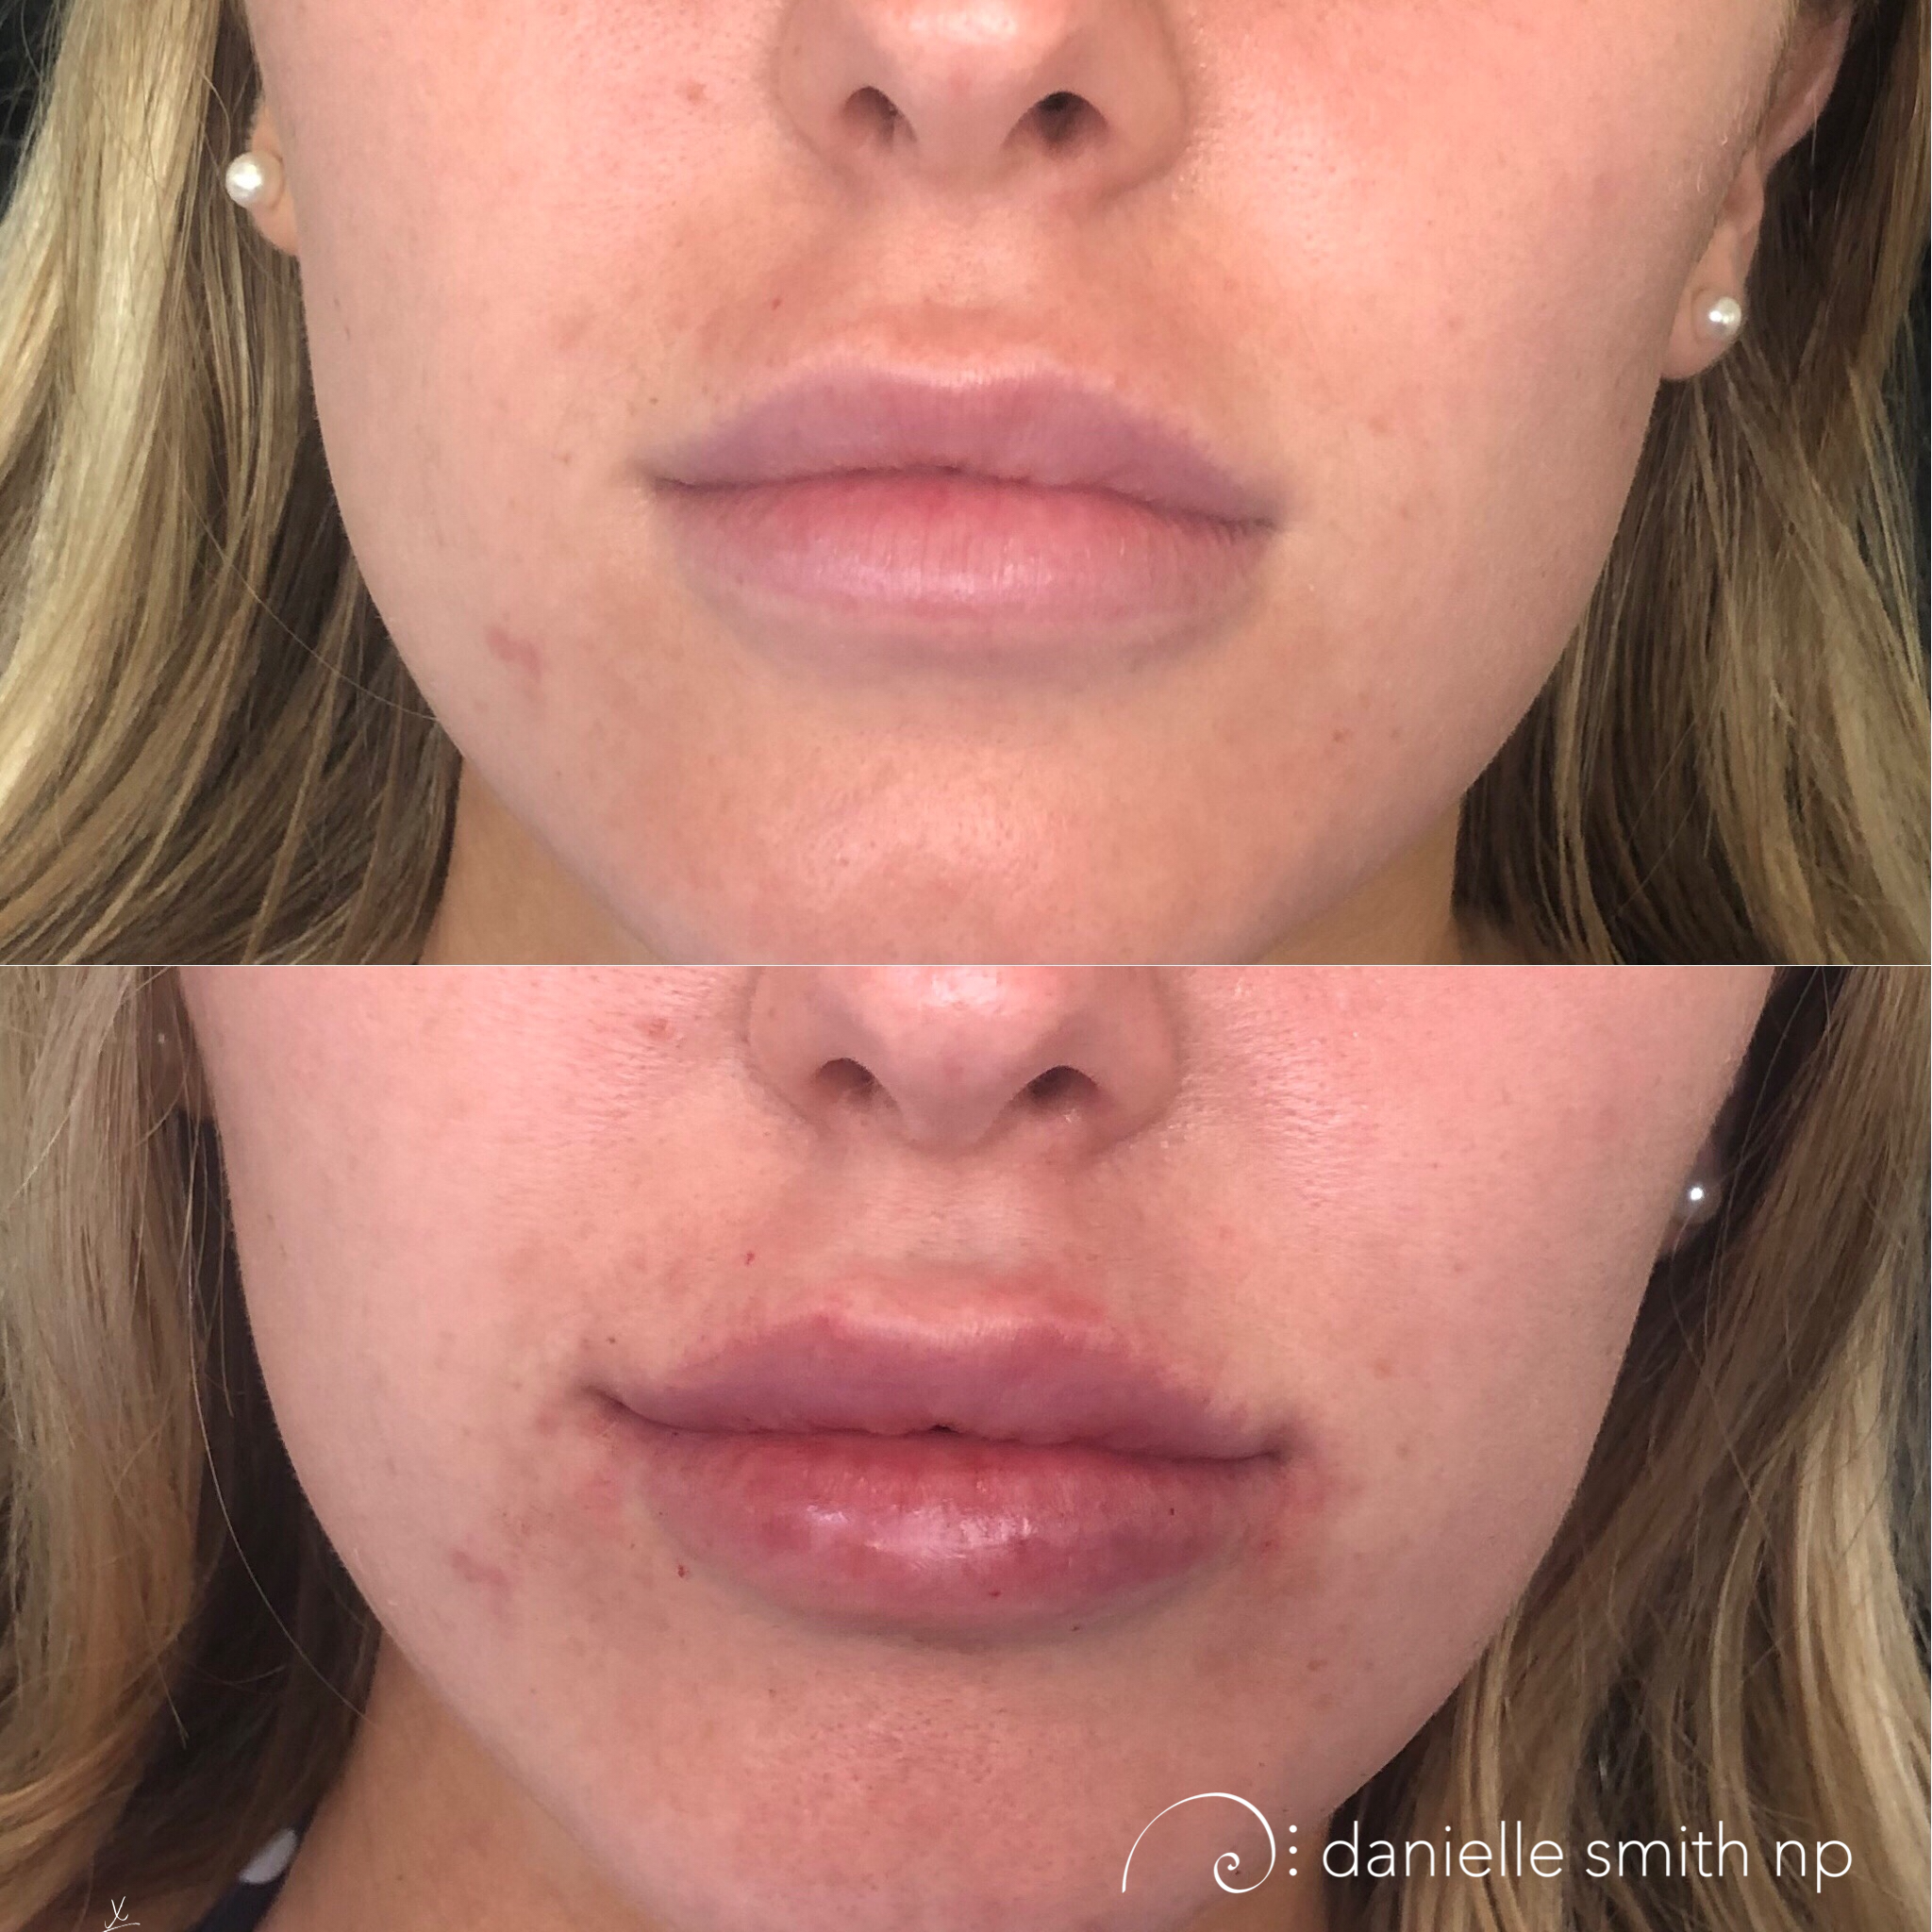 Danielle Smith NP injected 1.5 syringes of Juvederm to the body of the lips to add volume and 1 syringe of Volbella to the boarder for contour and definition. This patient wanted to achieve a 50:50 ratio between top and bottom lip which required adding a bit more to the top lip. As we add to the top lip it can round out the cupid bow and soften the definition of the lips. By injecting Volbella in the boarder, it allows us to redefine and shape the lips. We added back the cupids bow by highlighting the GK points and defined the bottom vermilion boarder with a crisp sharp edge.